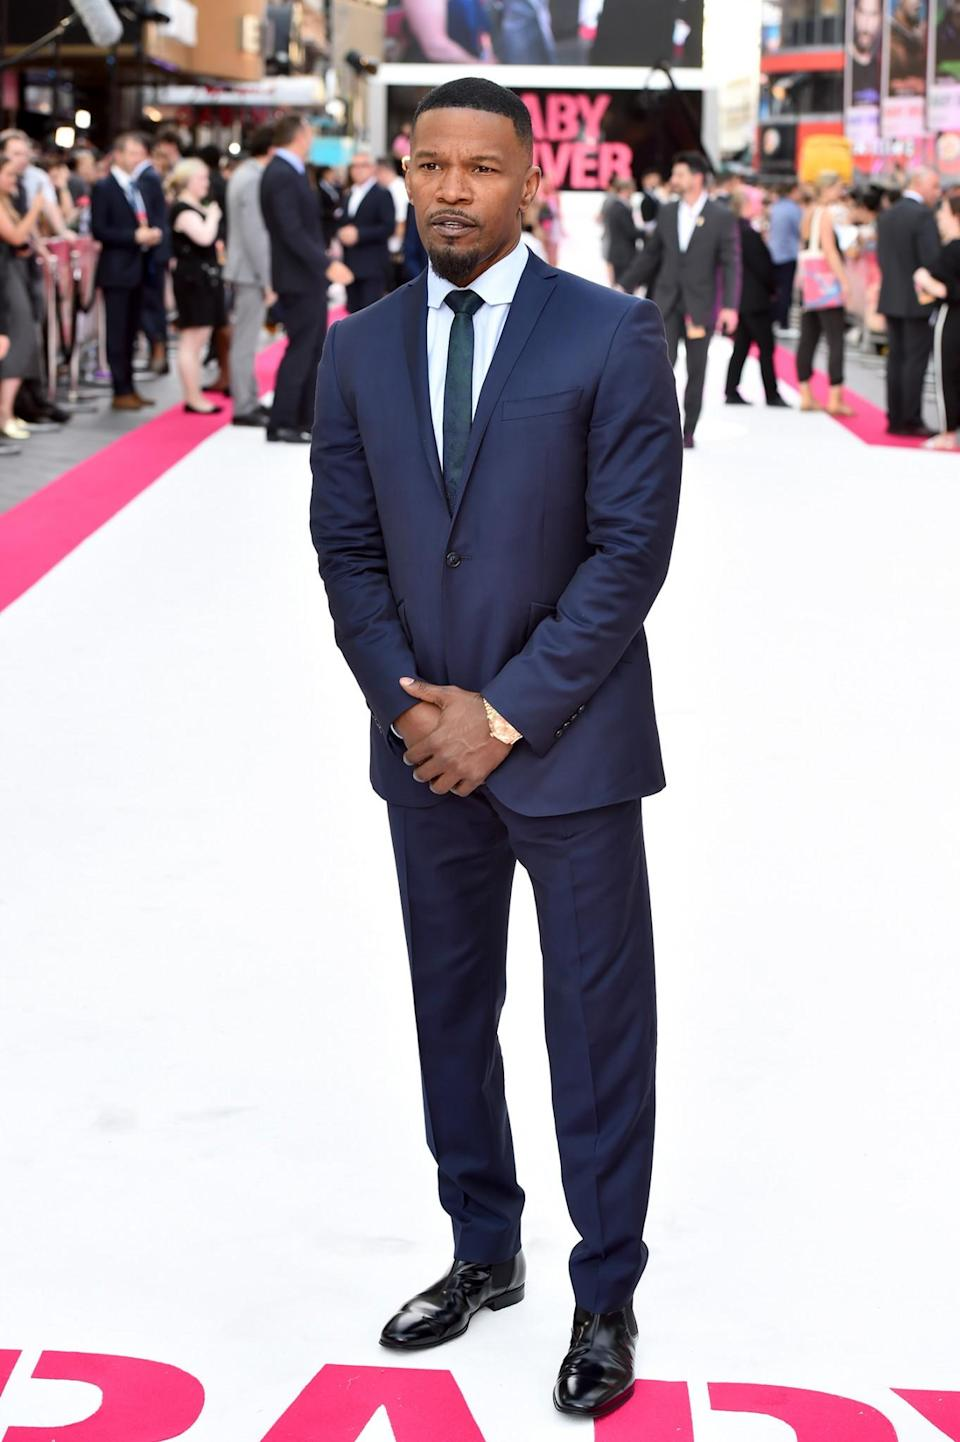 <p>Foxx opted for a blue suit (a popular option for many men in the summer months) and looked as dapper as always. <br><em>[Photo: PA]</em> </p>